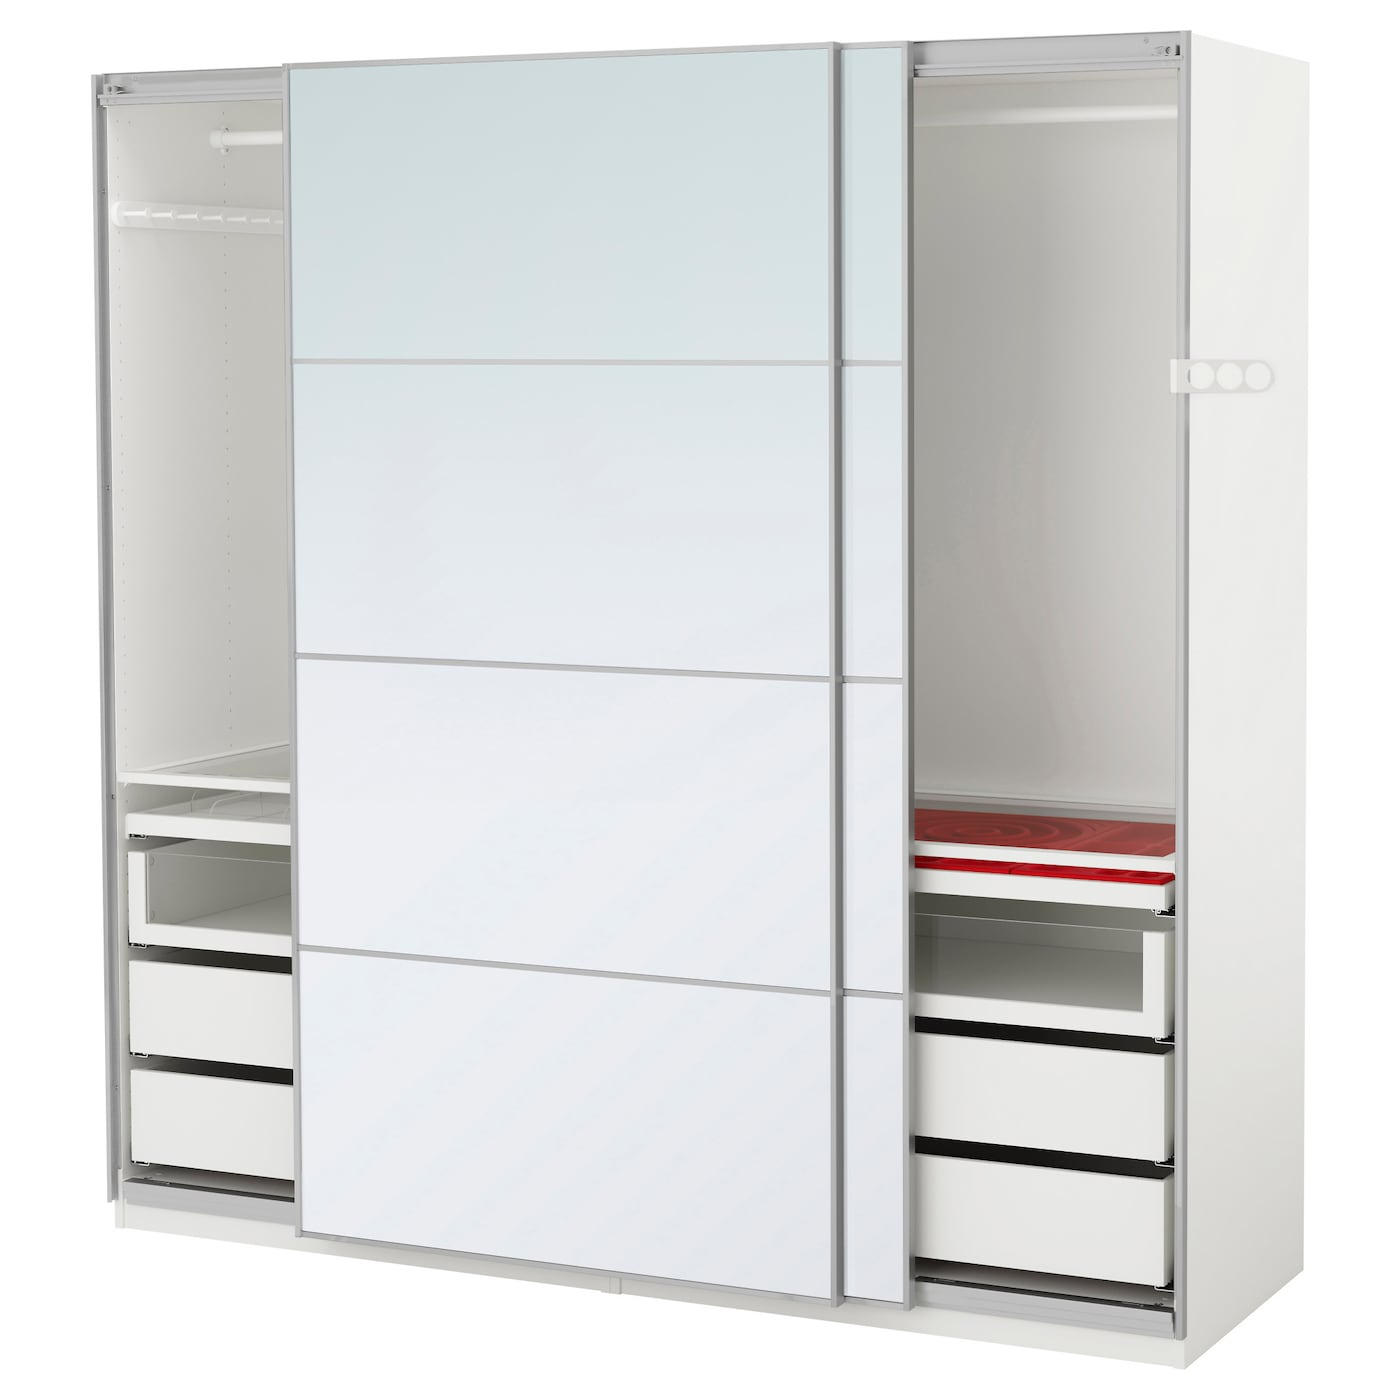 pax wardrobe white auli mirror glass 200x66x201 cm ikea. Black Bedroom Furniture Sets. Home Design Ideas